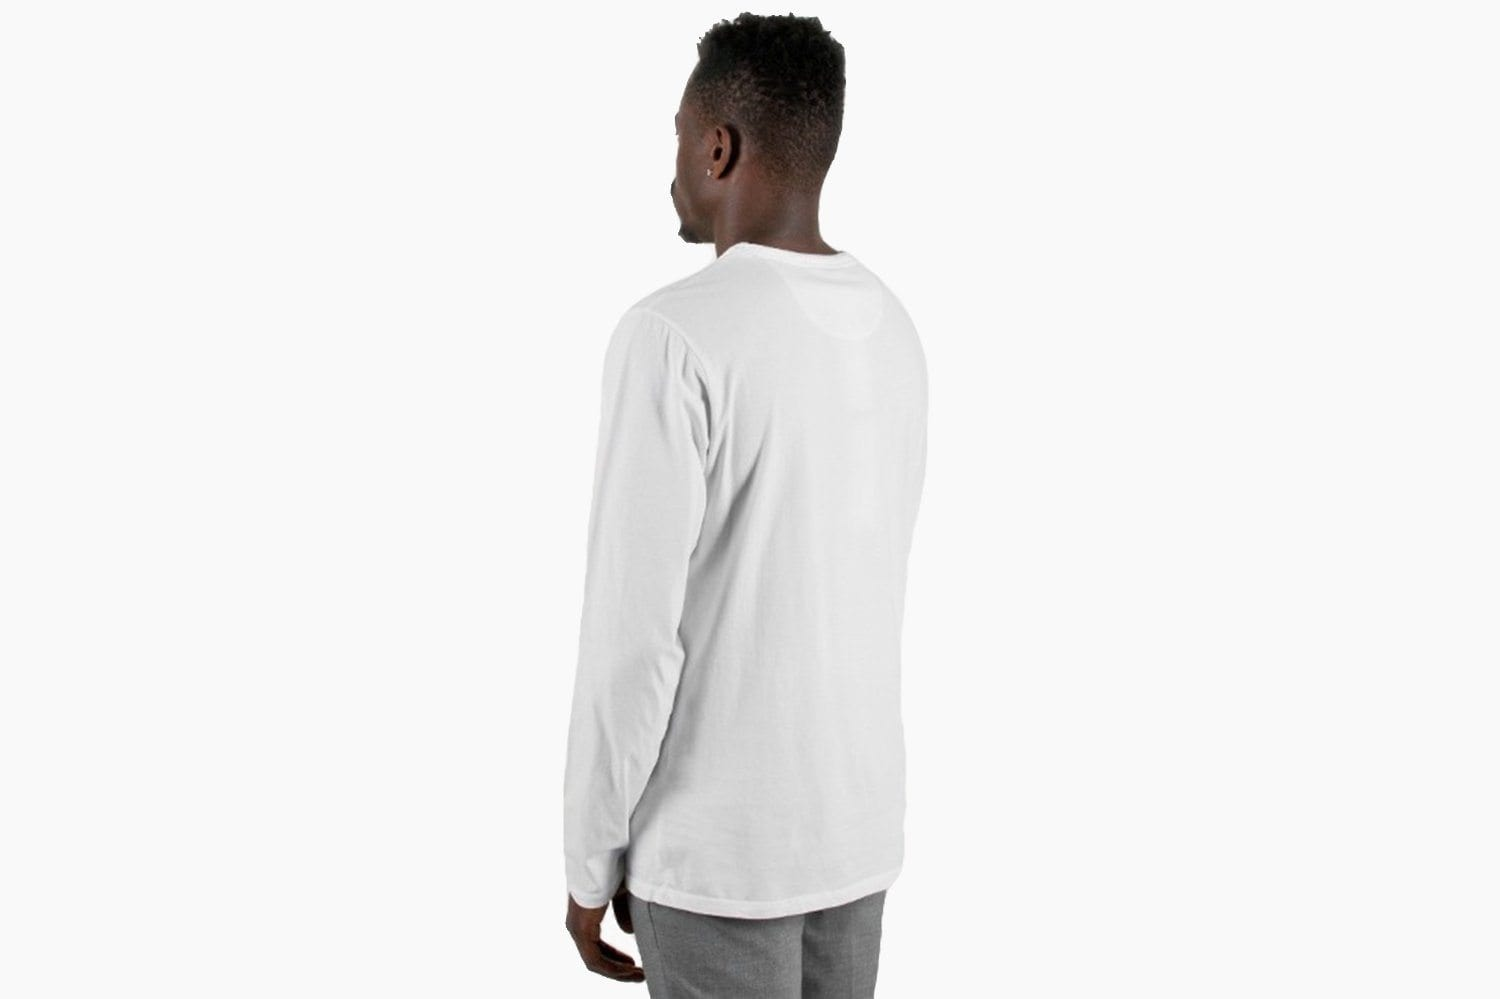 JAMES PIMA L/S TEE - AA0011JS01 MENS SOFTGOODS SATURDAYS NYC